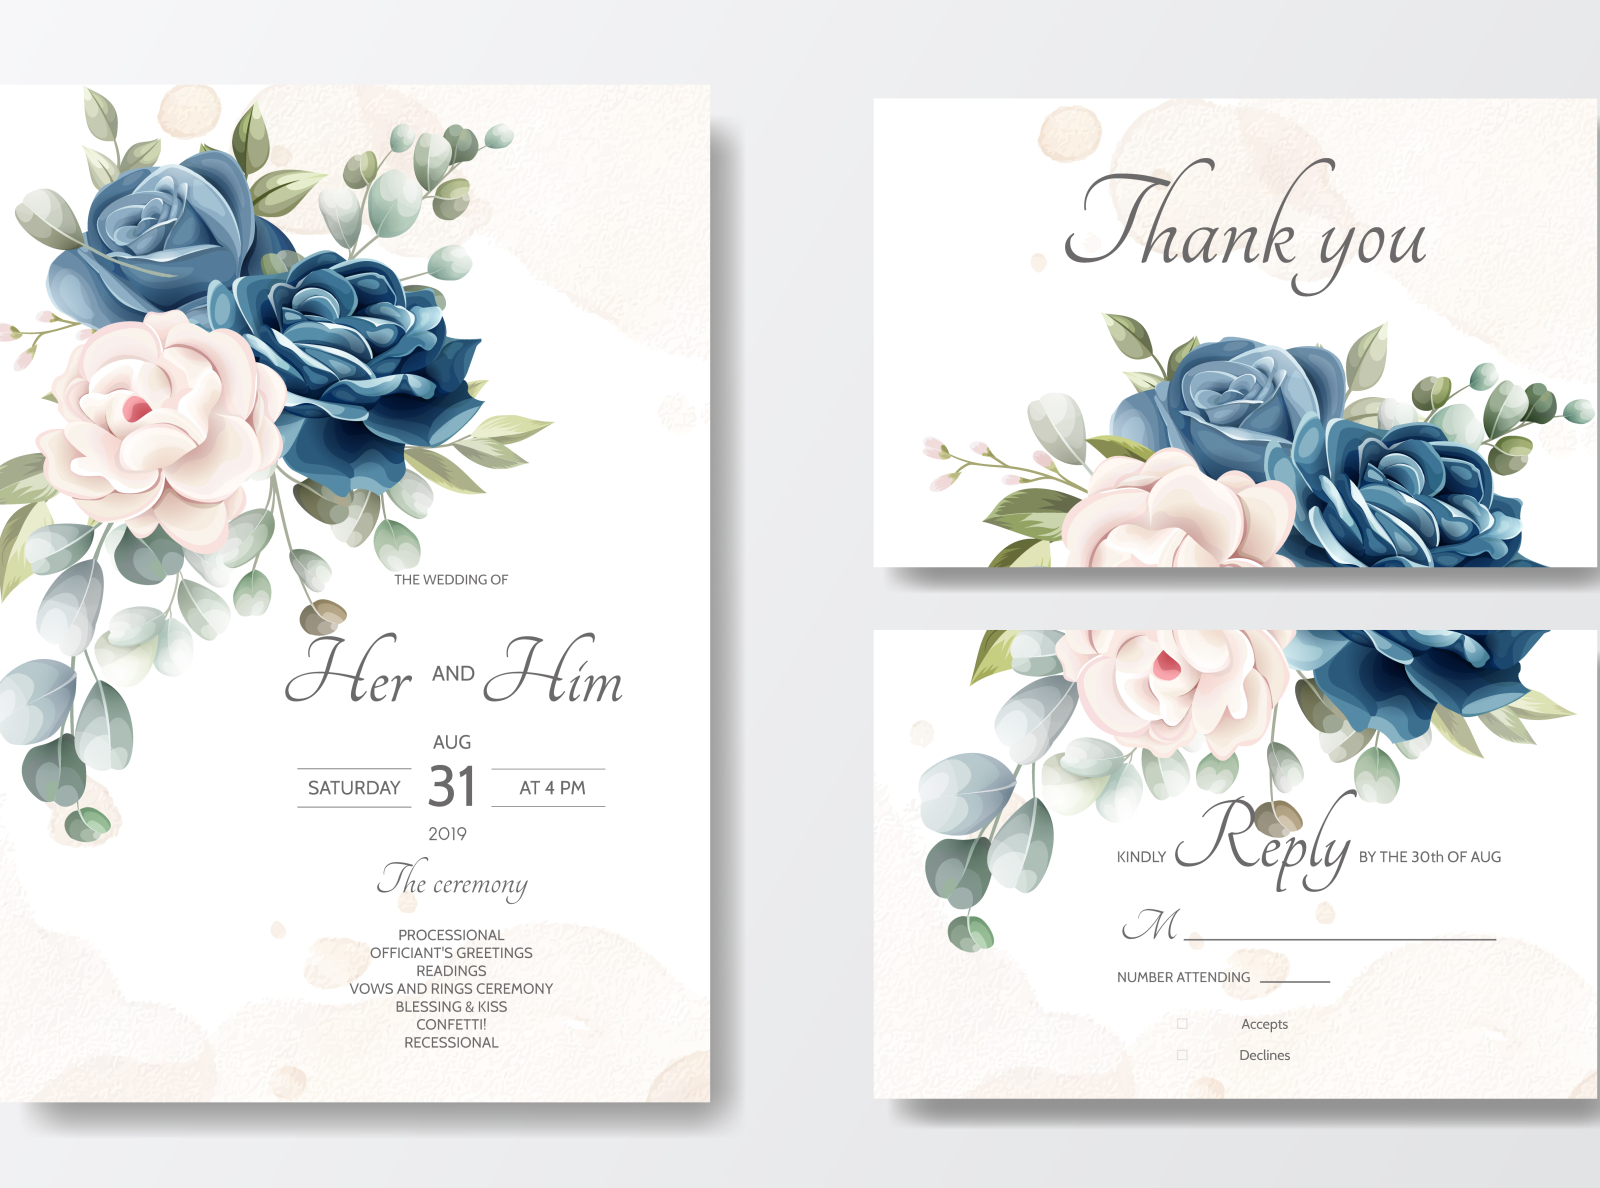 Beautiful Floral Wreath Wedding Invitation Card Template By